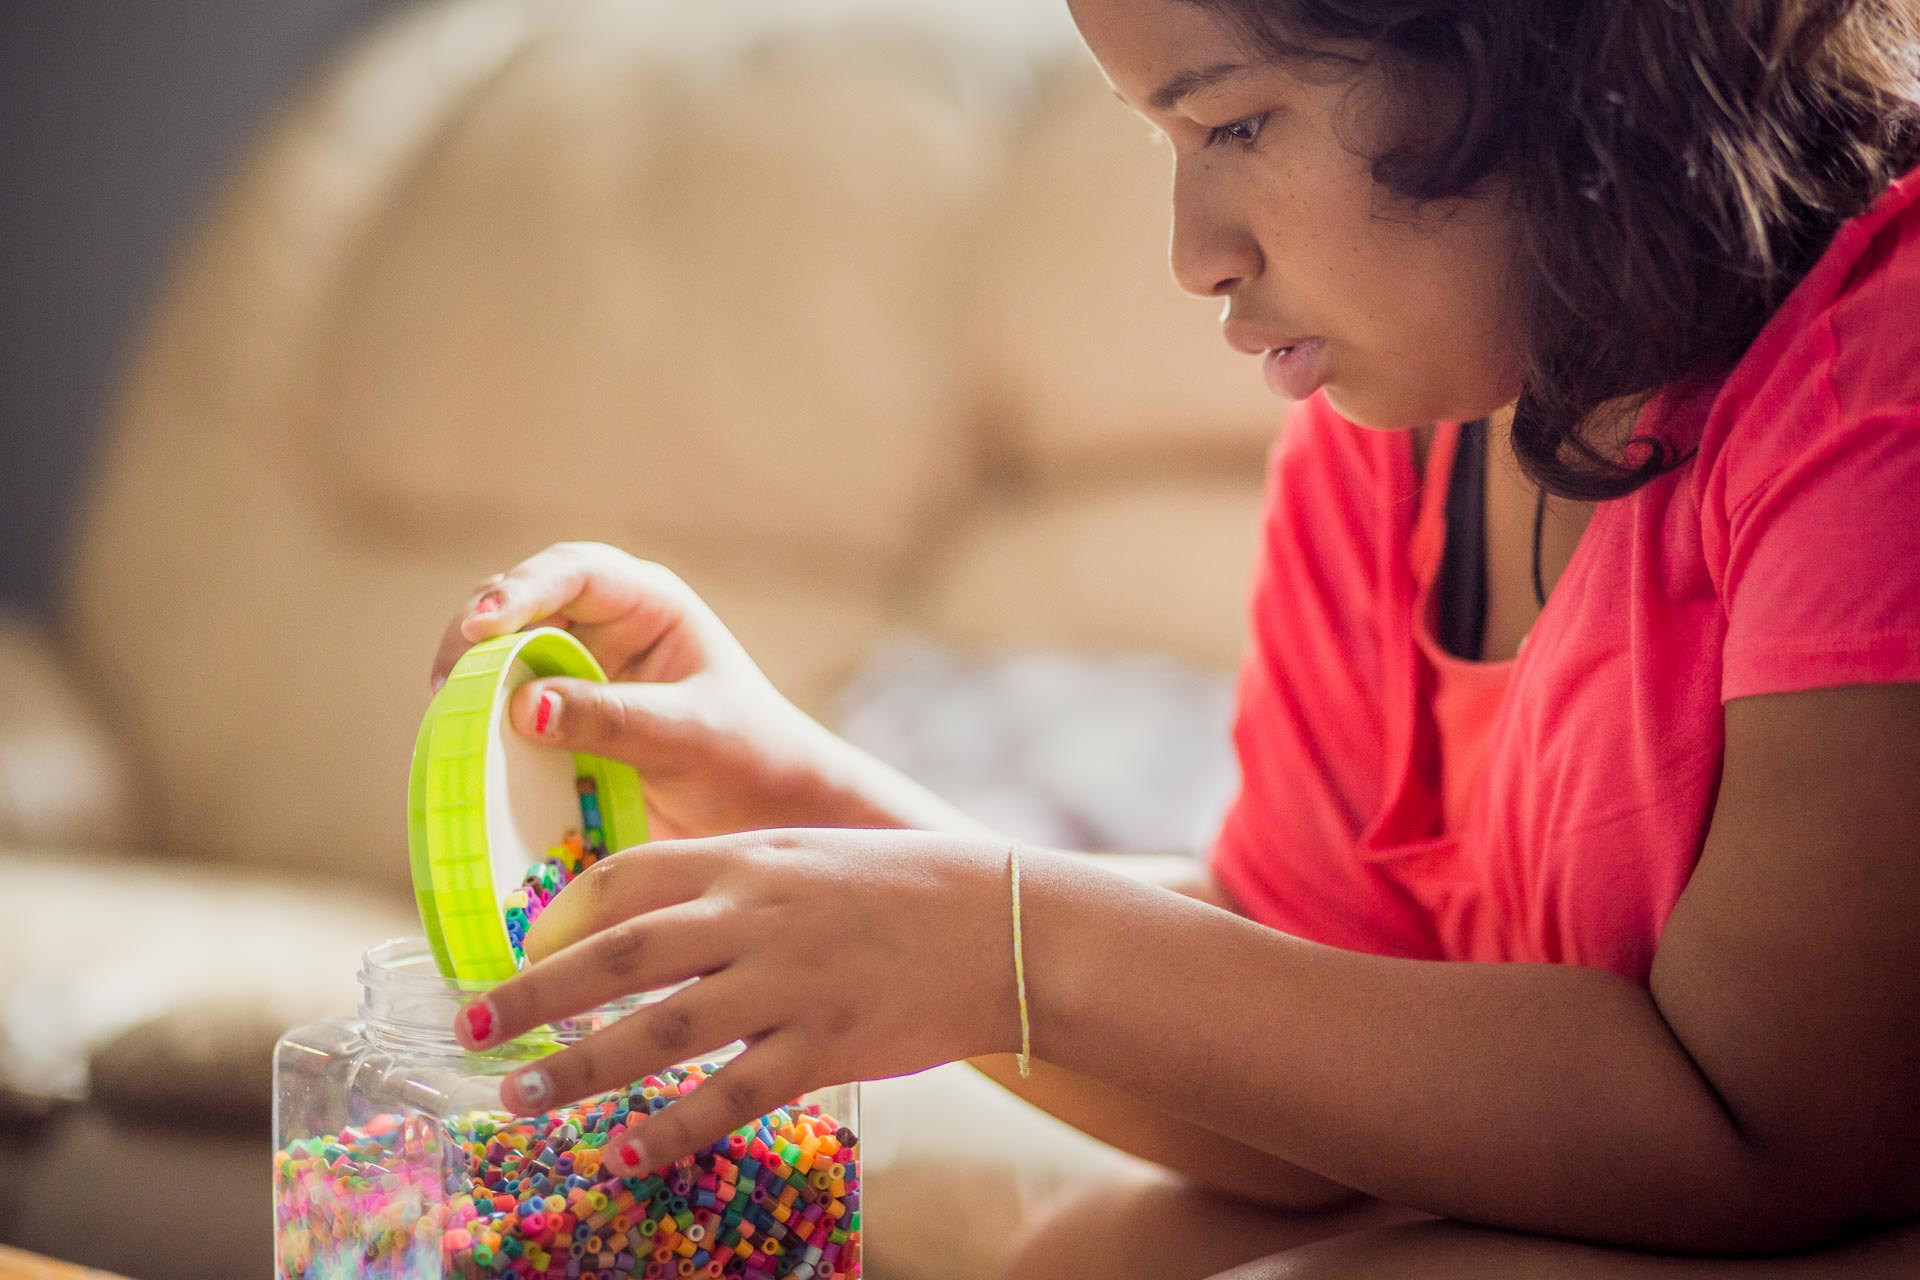 Veronica cleans up perler beads